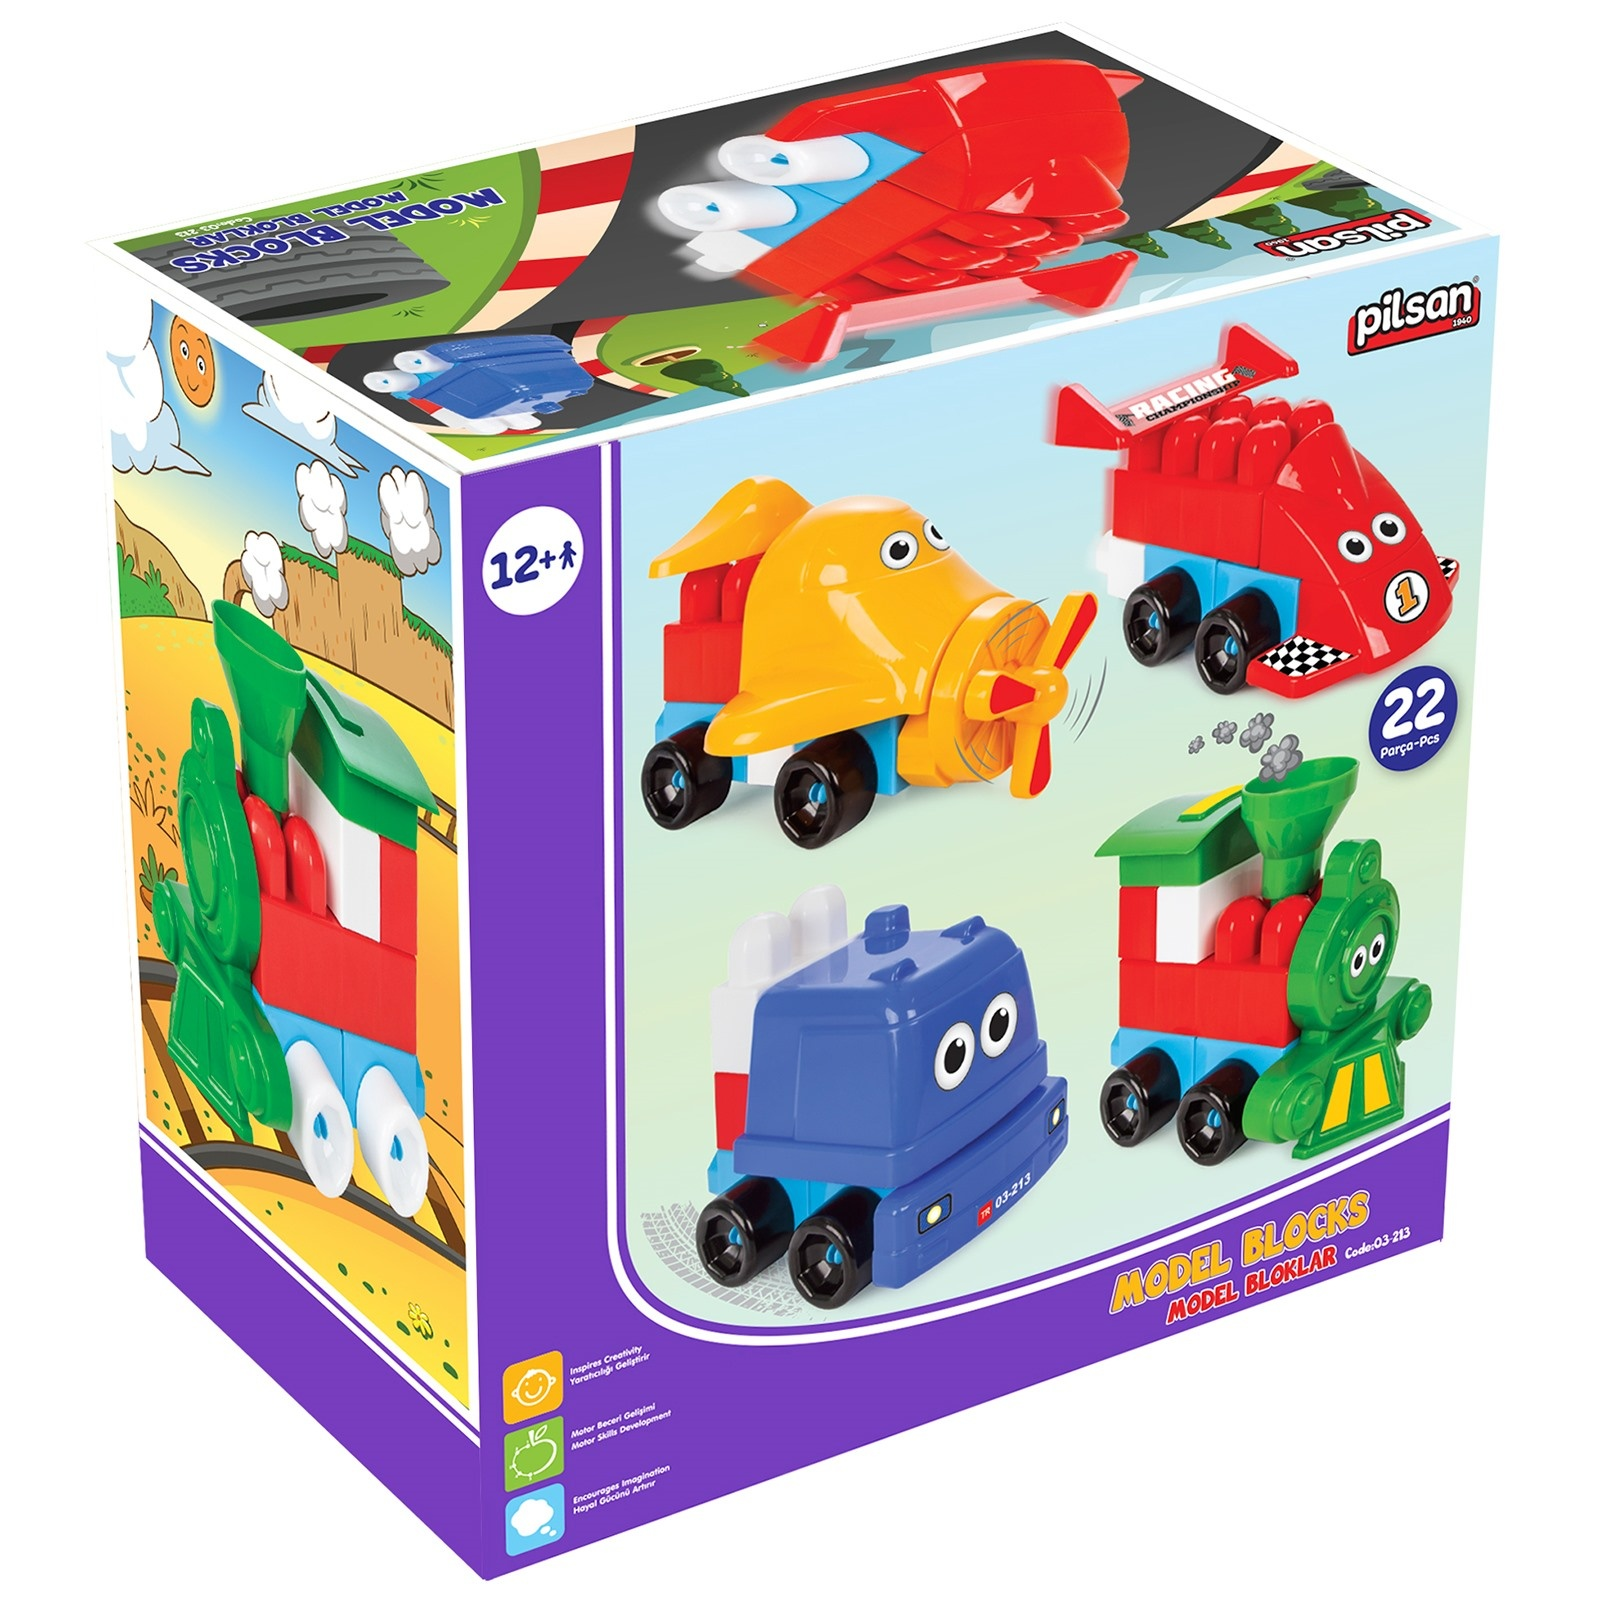 Ebebek Pilsan Model Blocks 22 Pcs